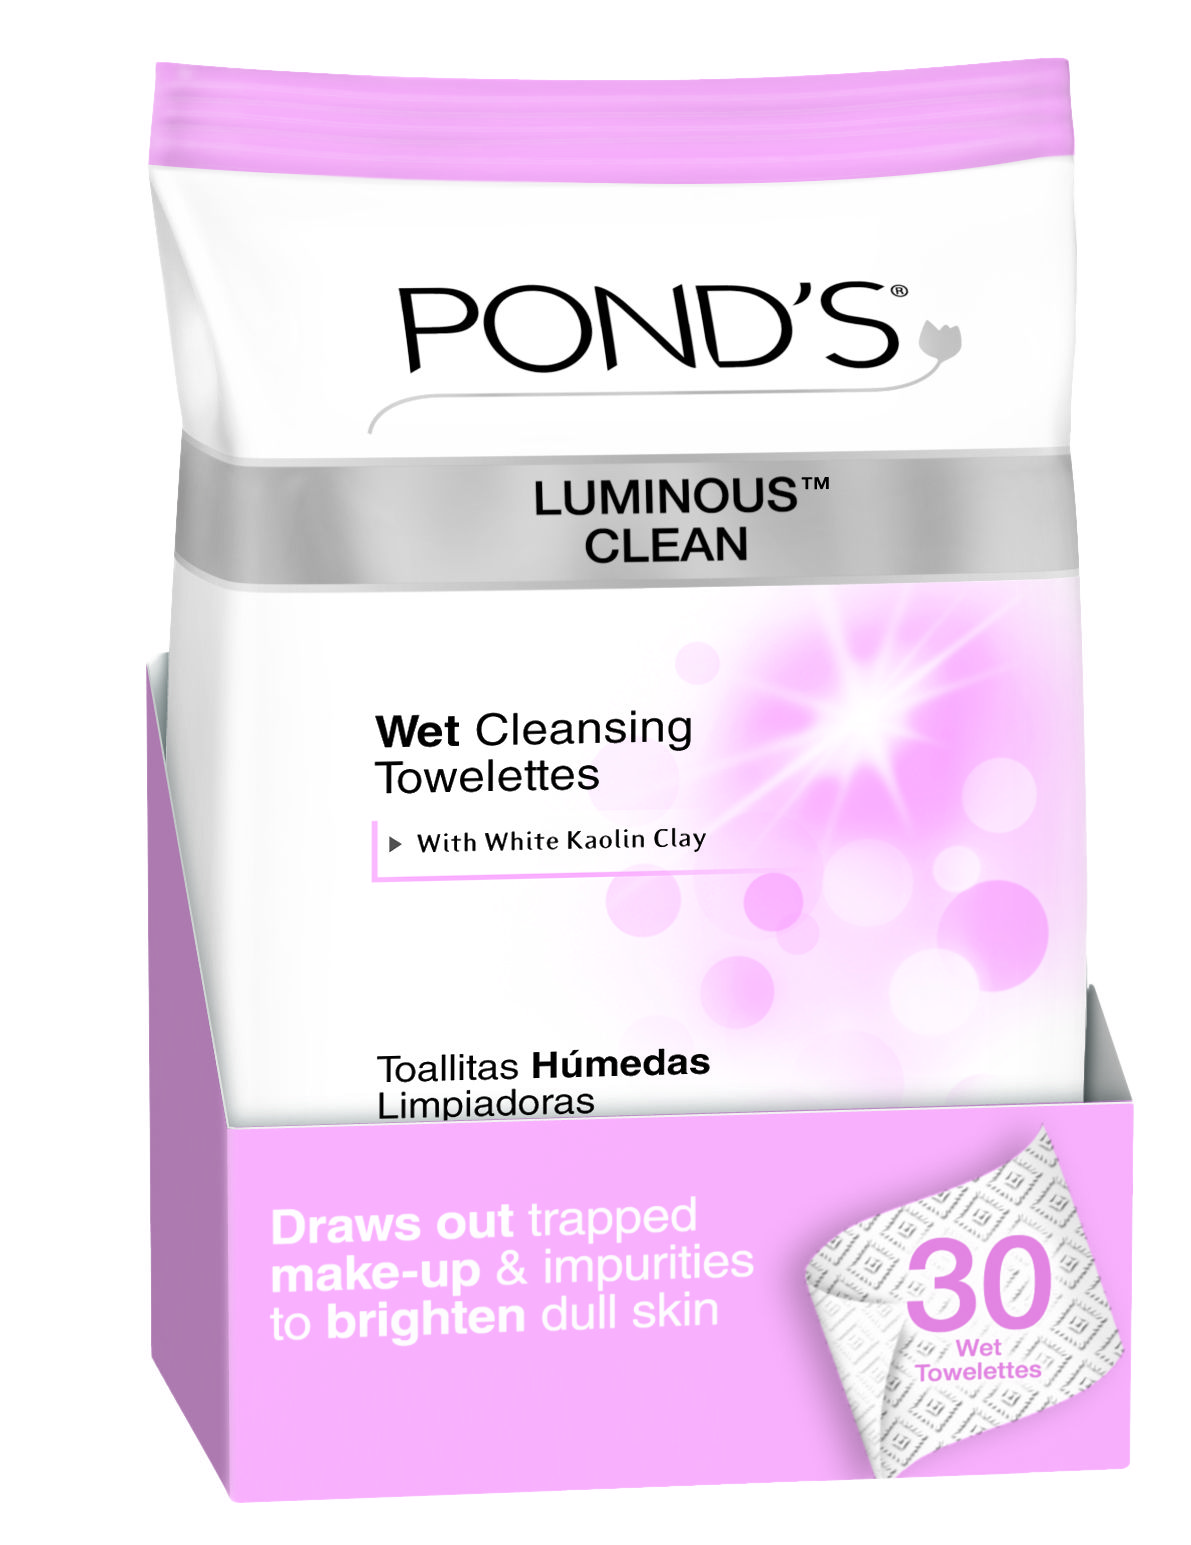 Pond's Luminous Line Review, Giveaway and Tips for Looking